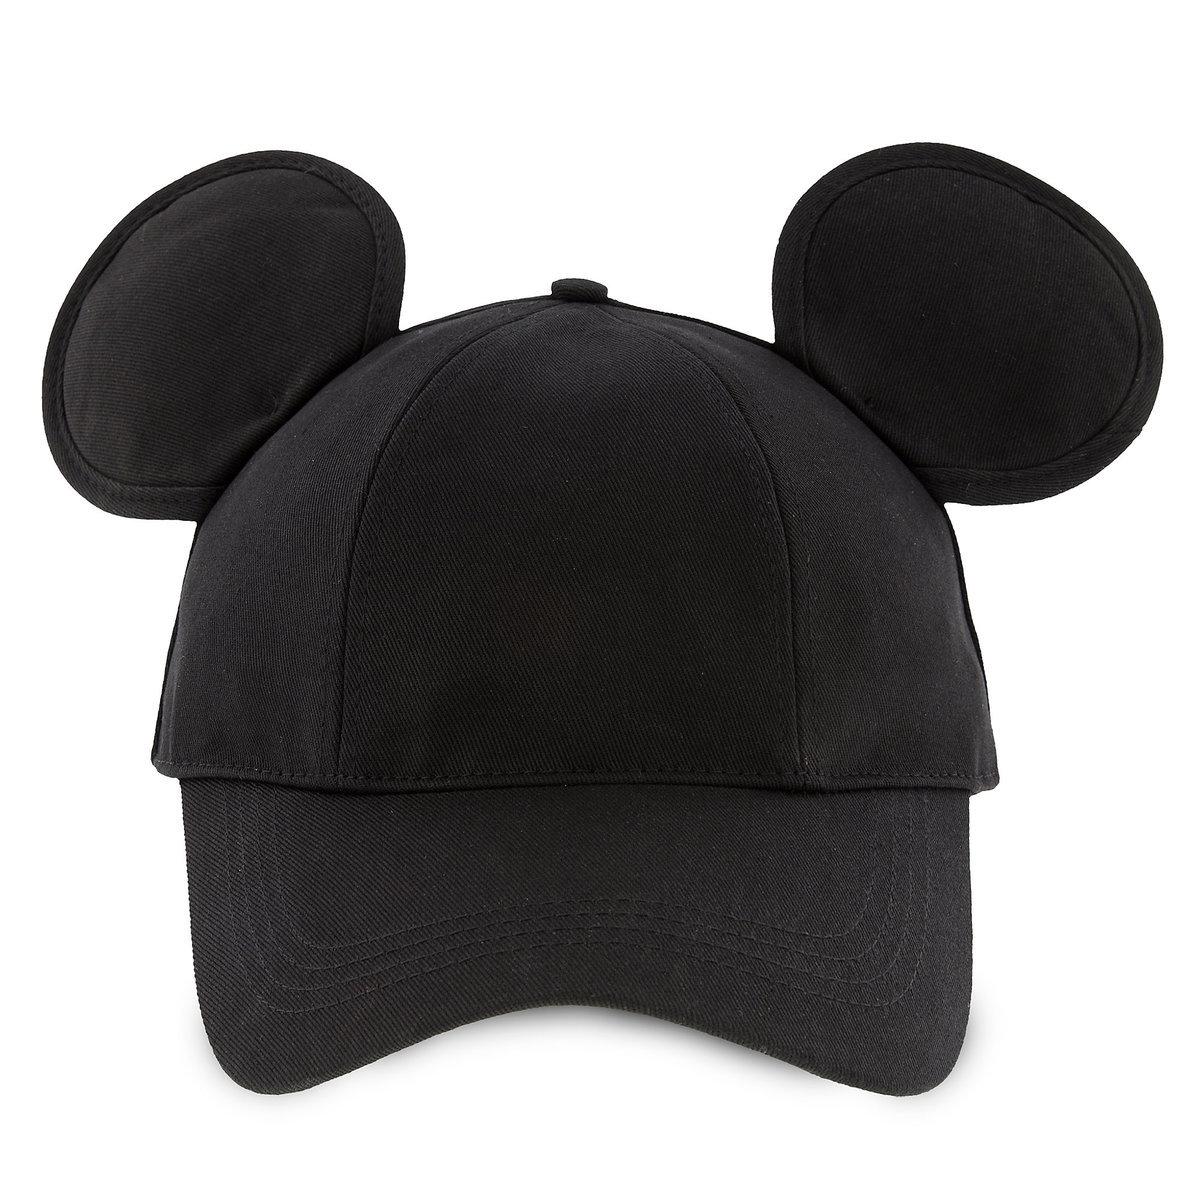 Thumbnail Image of Mickey Mouse Ears Baseball Cap for Adults # 3